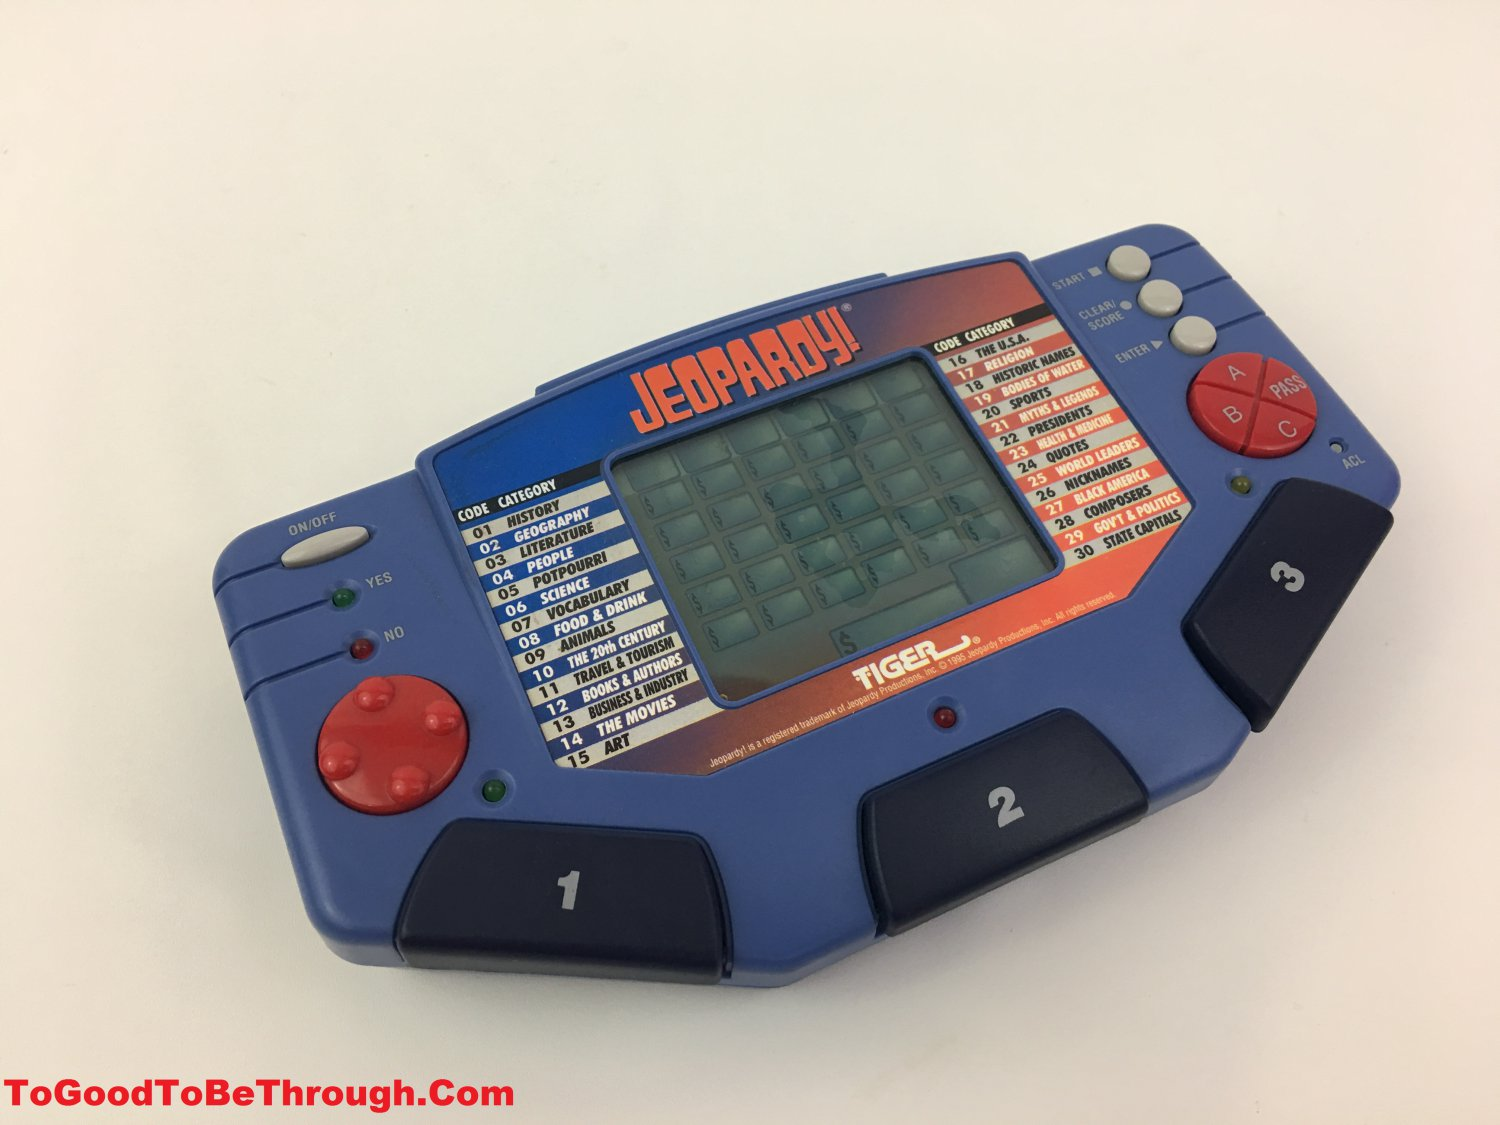 Tiger Jeopardy! Electronic LCD Game (7-581)